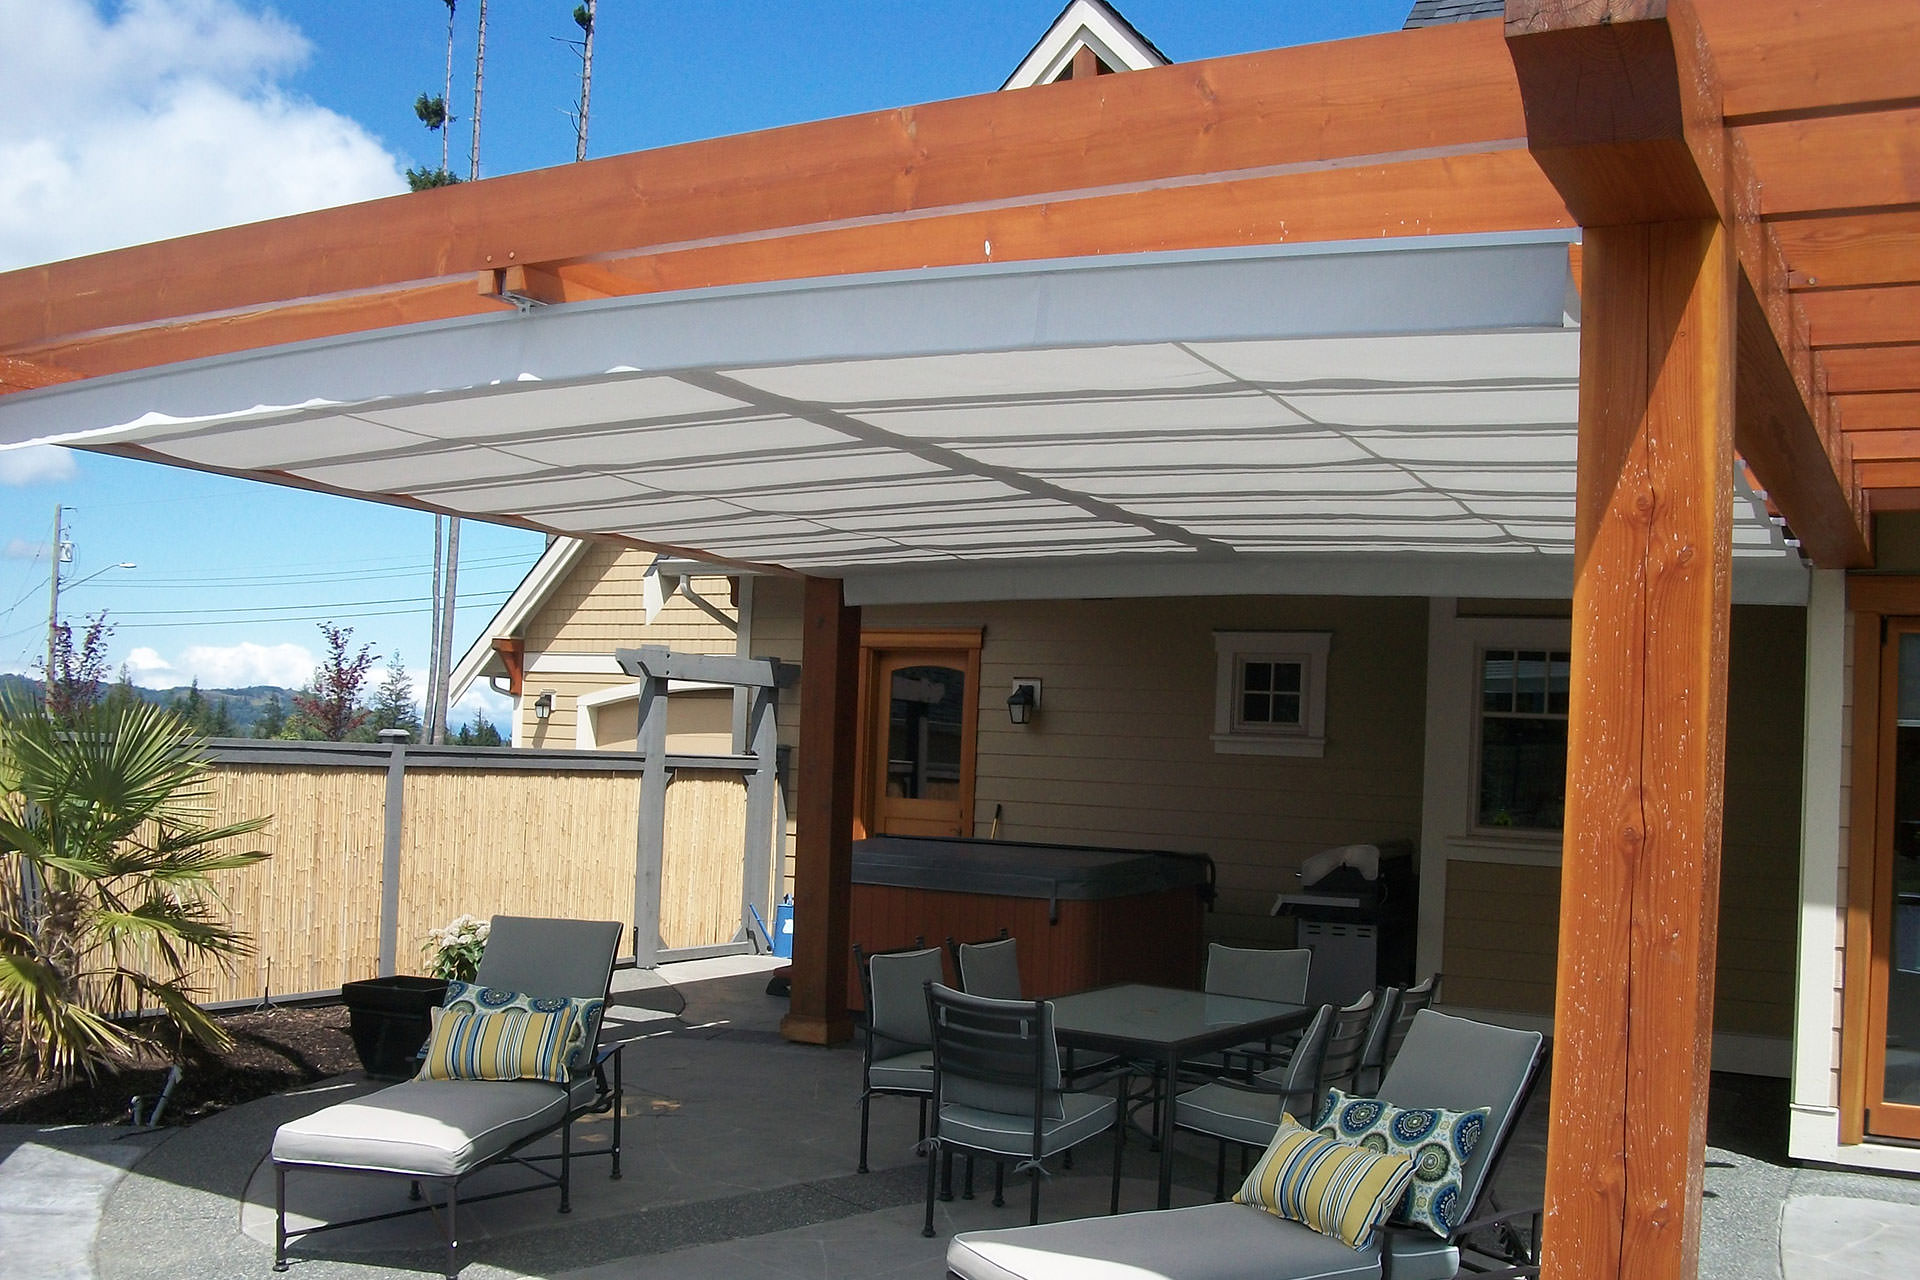 Staying On Track - Retractable Canopy Track Systems